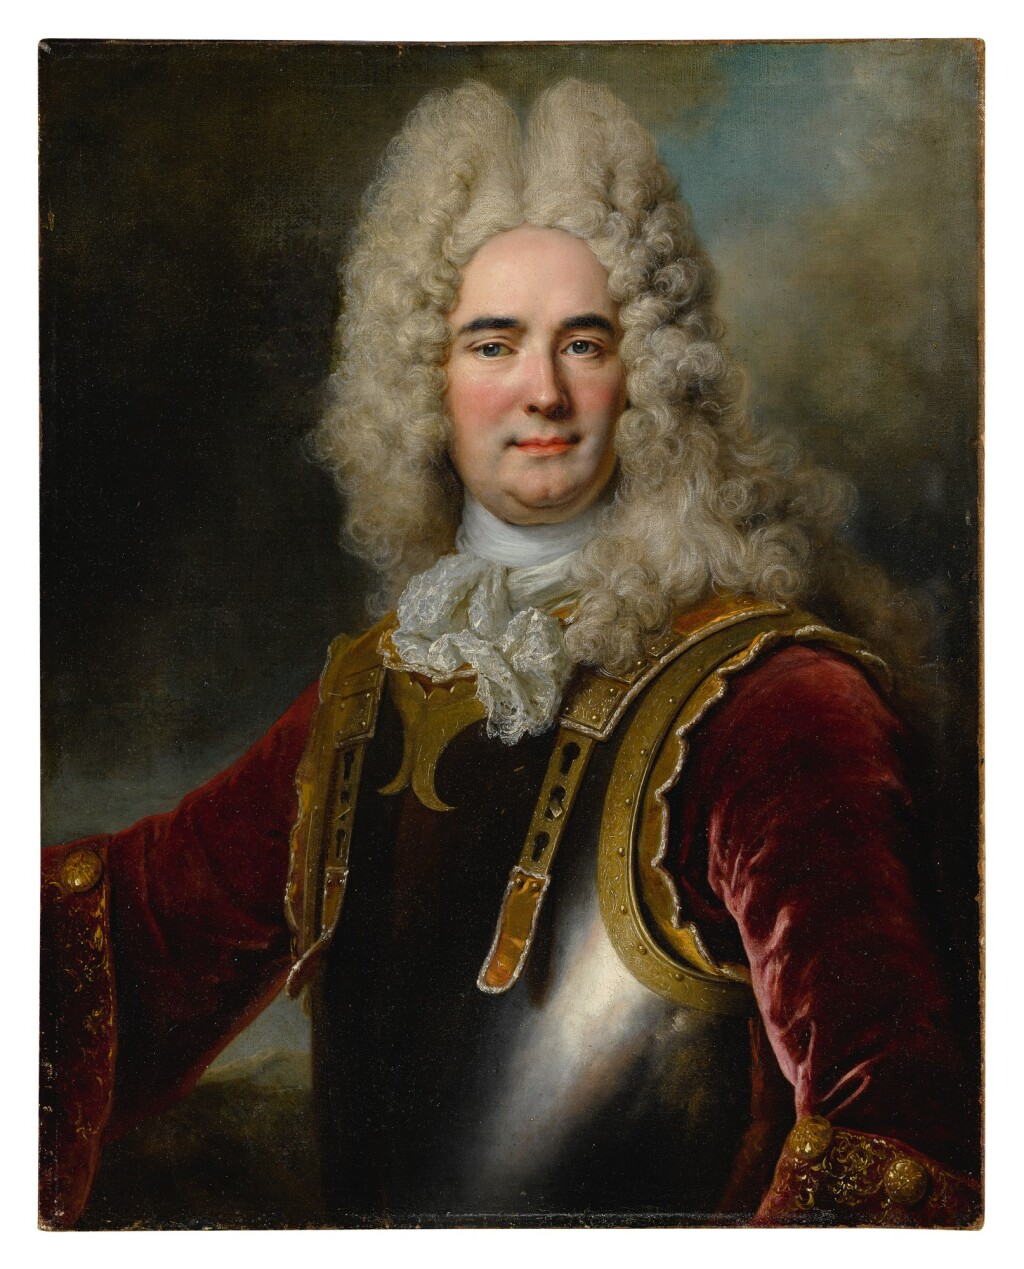 NICOLAS DE LARGILLIERRE   PORTRAIT OF A GENTLEMAN, SAID TO BE THE CHAMBERLAIN DE MONTARGU, HALF-LENGTH, WEARING A BREASTPLATE OVER A RED VELVET JACKET WITH GOLD EMBROIDERED SLEEVES